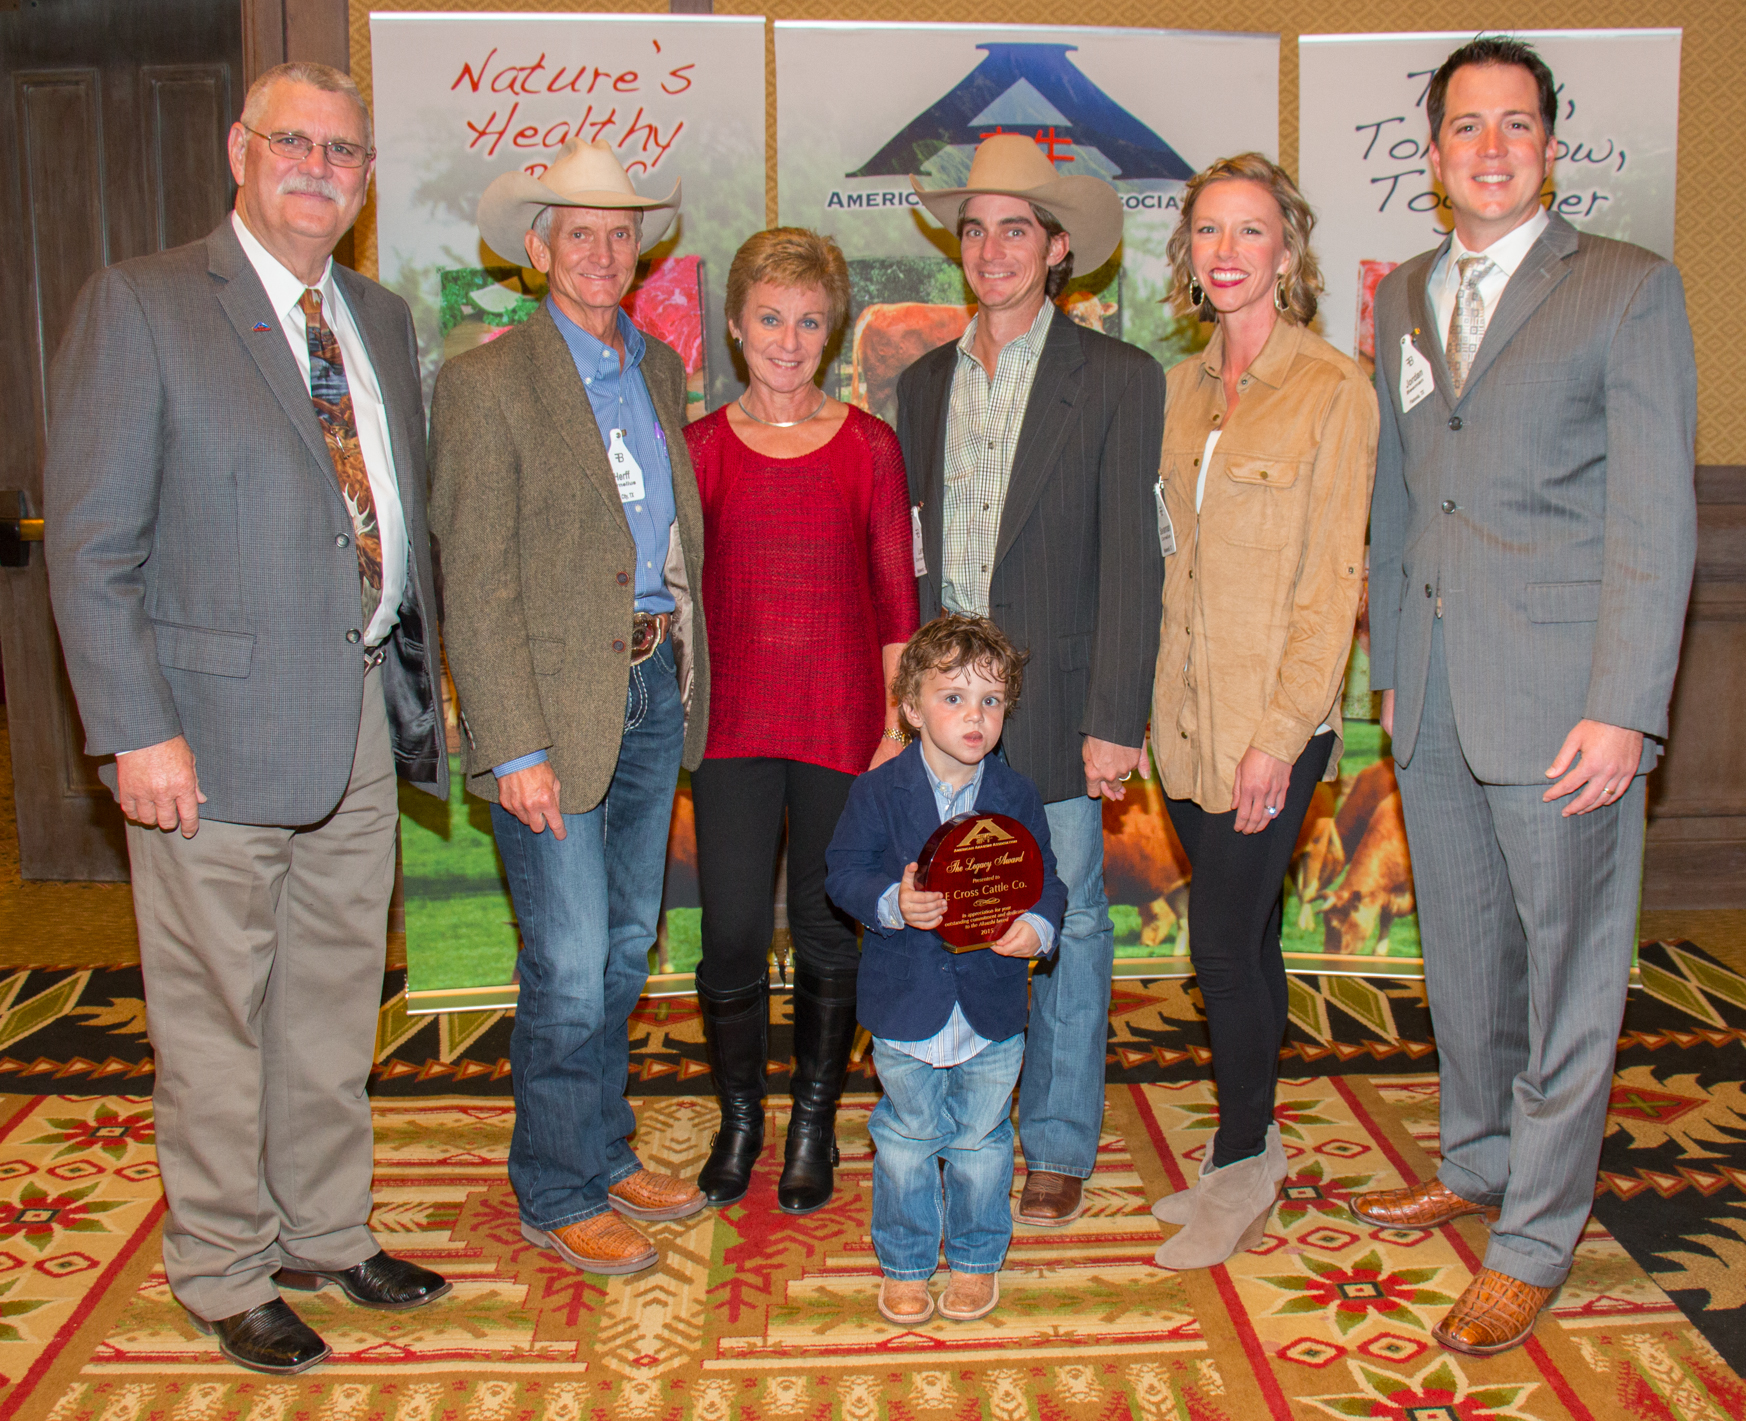 Bubba Bain, Executive Director American Akaushi Association with E Cross Cattle Company the 2015 Legacy Award Winner; Herff and Nancy Cornelius, Len and Savannah Cornelius, Jordan Beeman, President HeartBrand Beef, Inc., in front holding the award is Wyatt Cornelius, son of Len and Savannah.